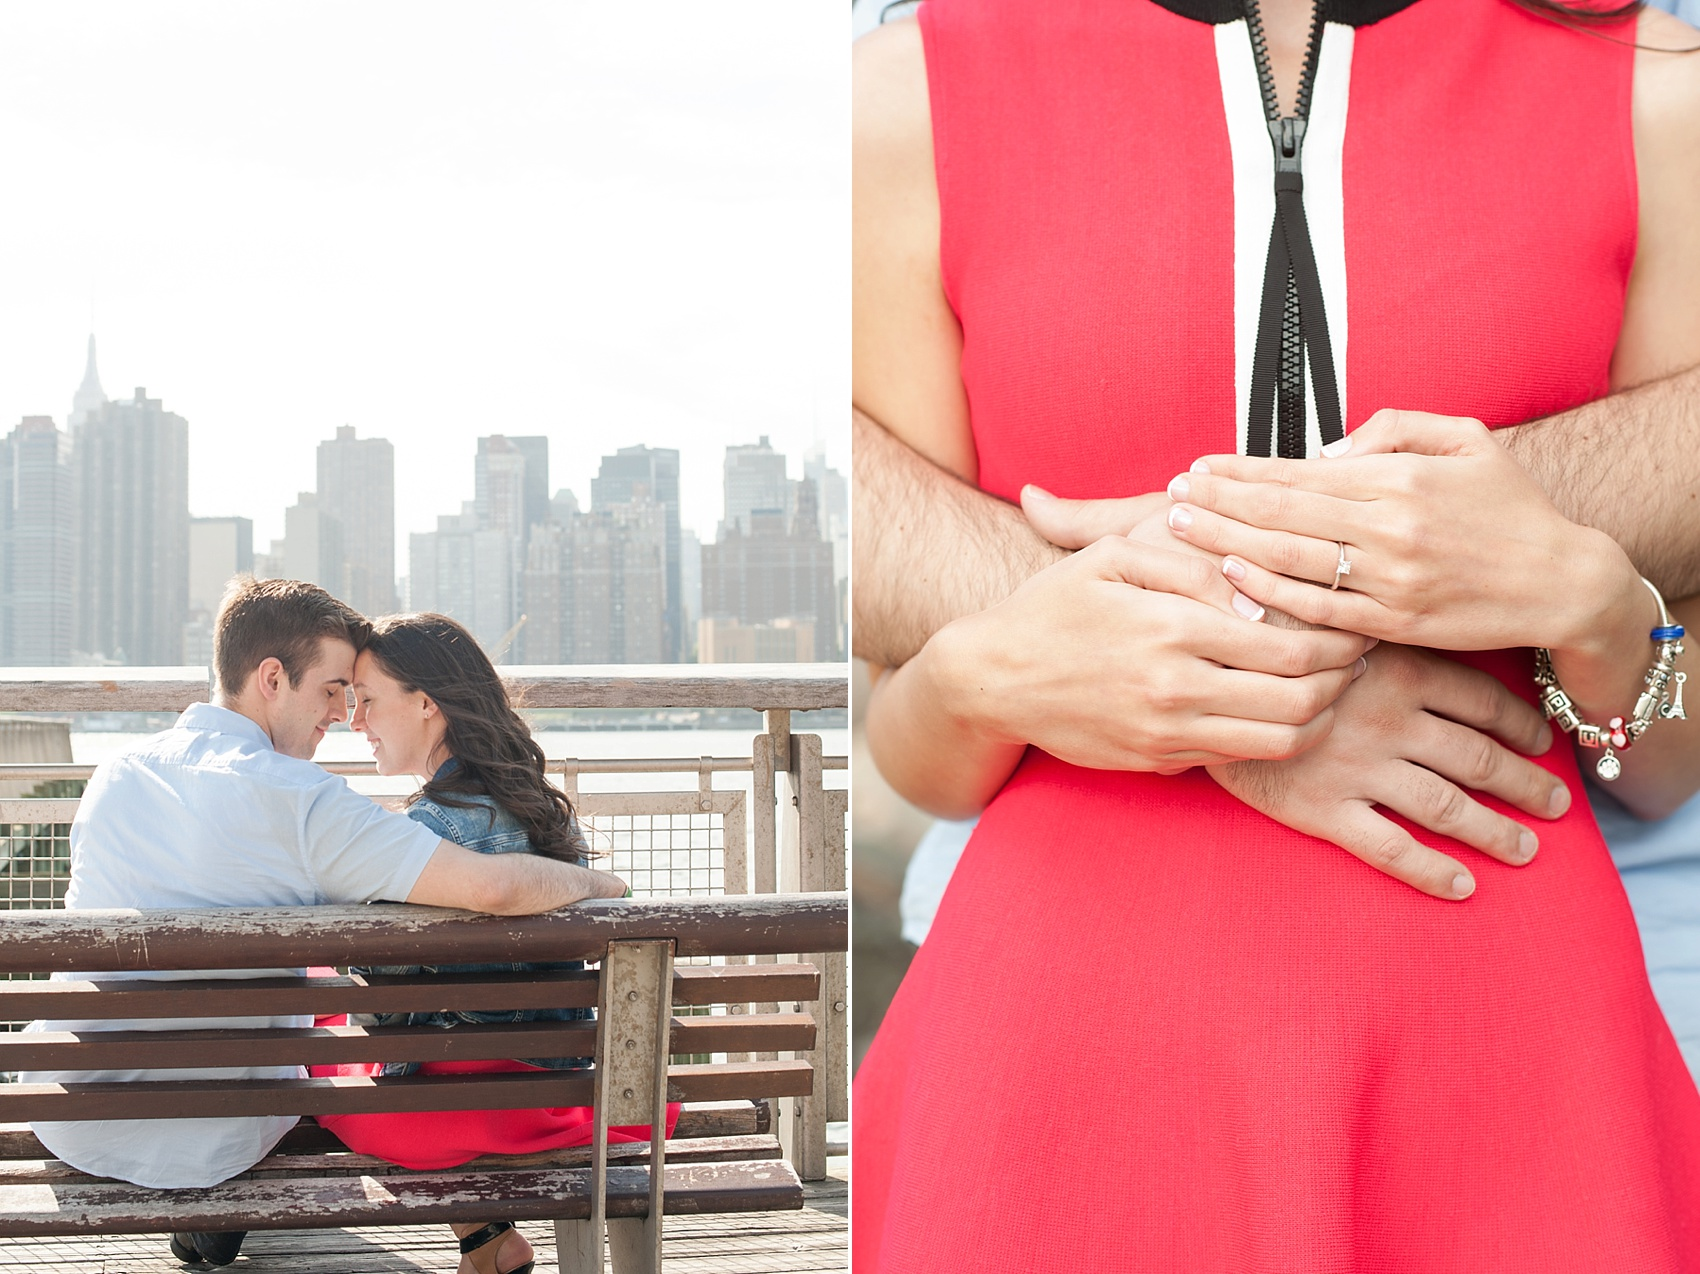 Long Island City waterfront engagement session at Gantry State Park by Mikkel Paige Photography, NYC wedding photographer.